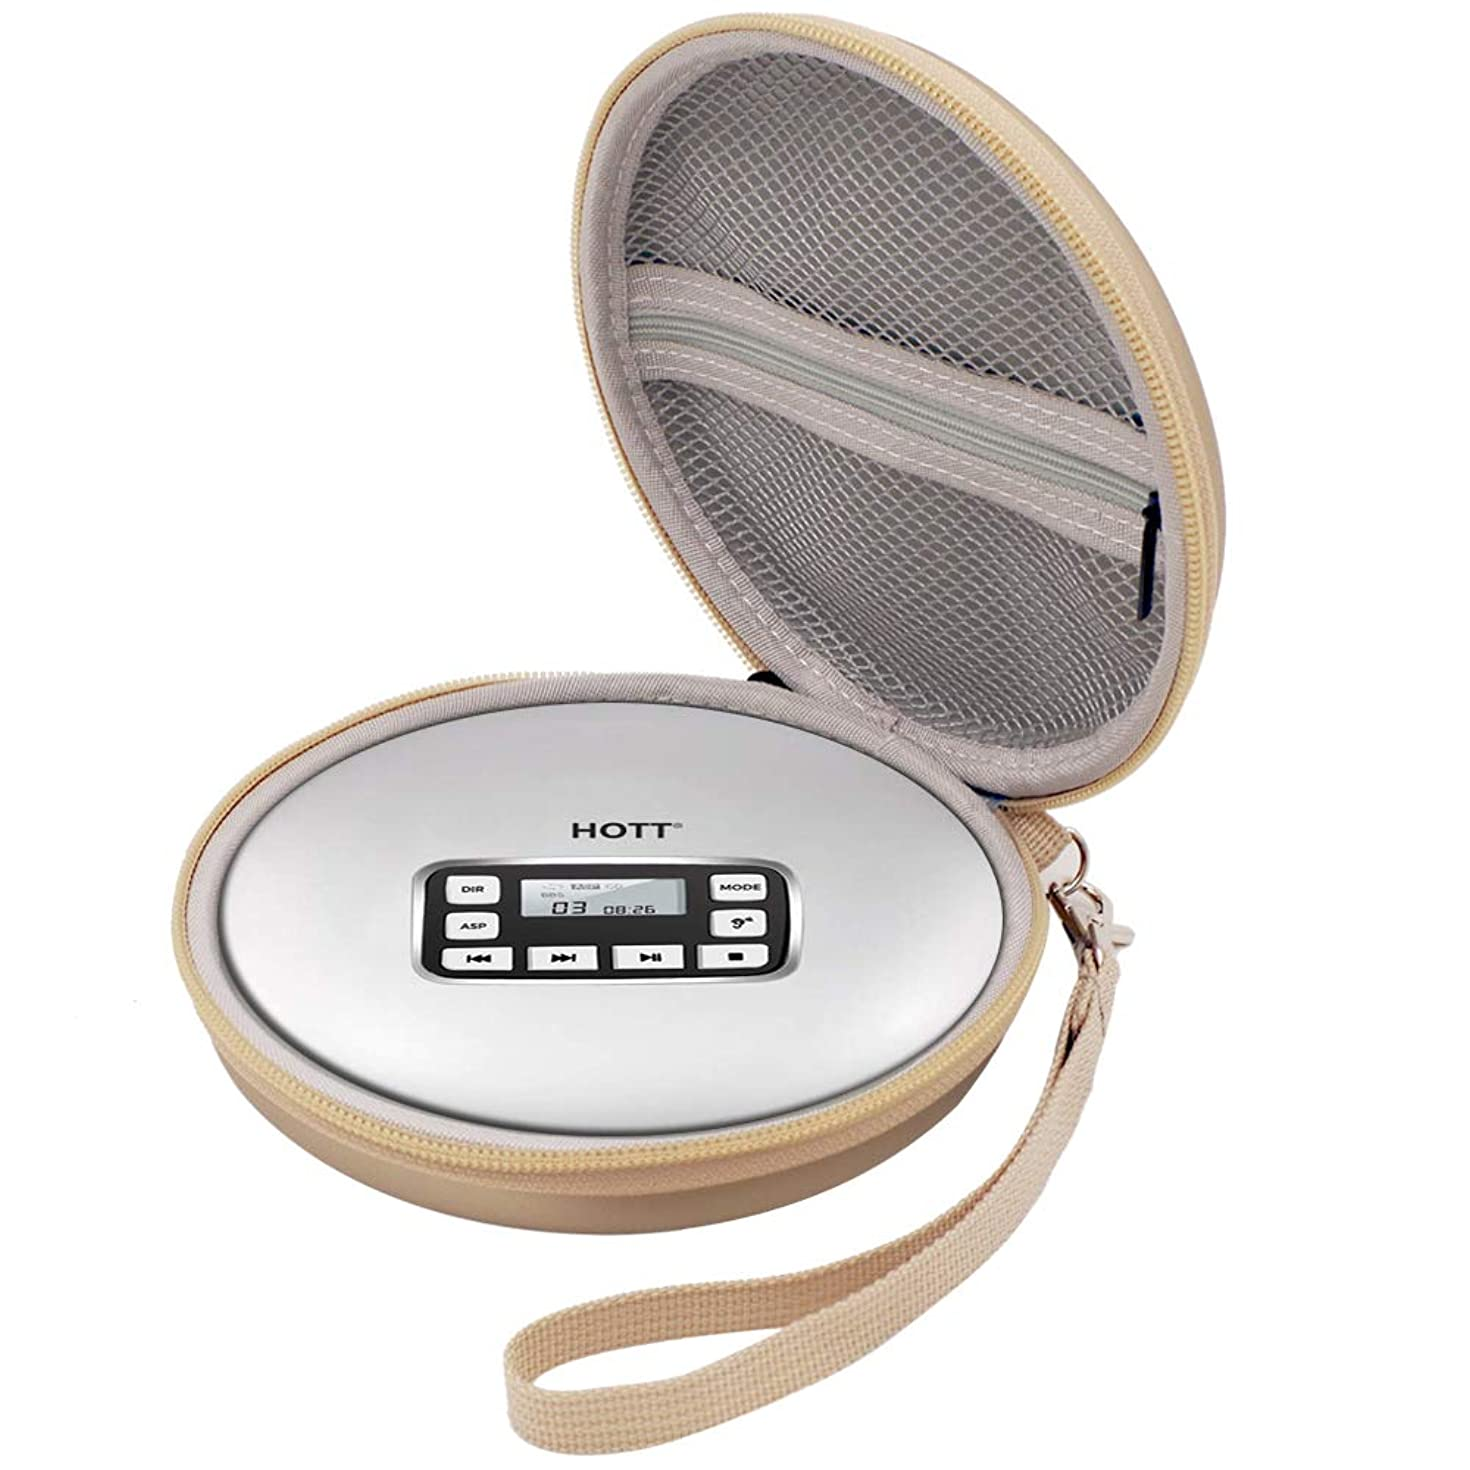 Wellgain Case Compatible for HOTT Rechargeable Portable CD Player, CD711 / CD611 / Personal Compact Disc Player - Gold